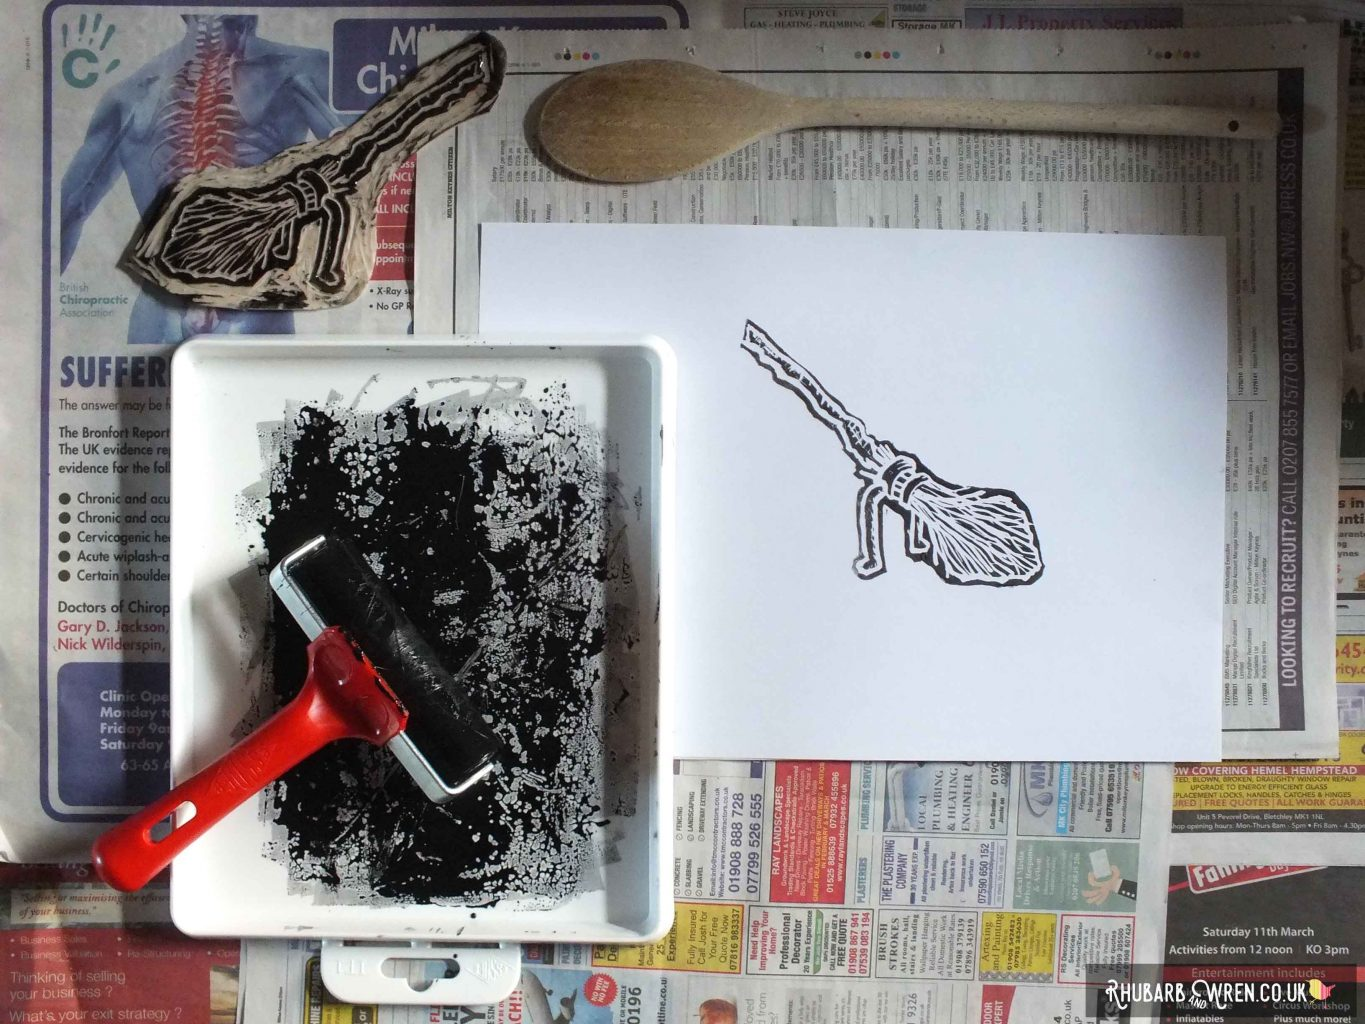 lino print of Harry Potter's firebolt broom